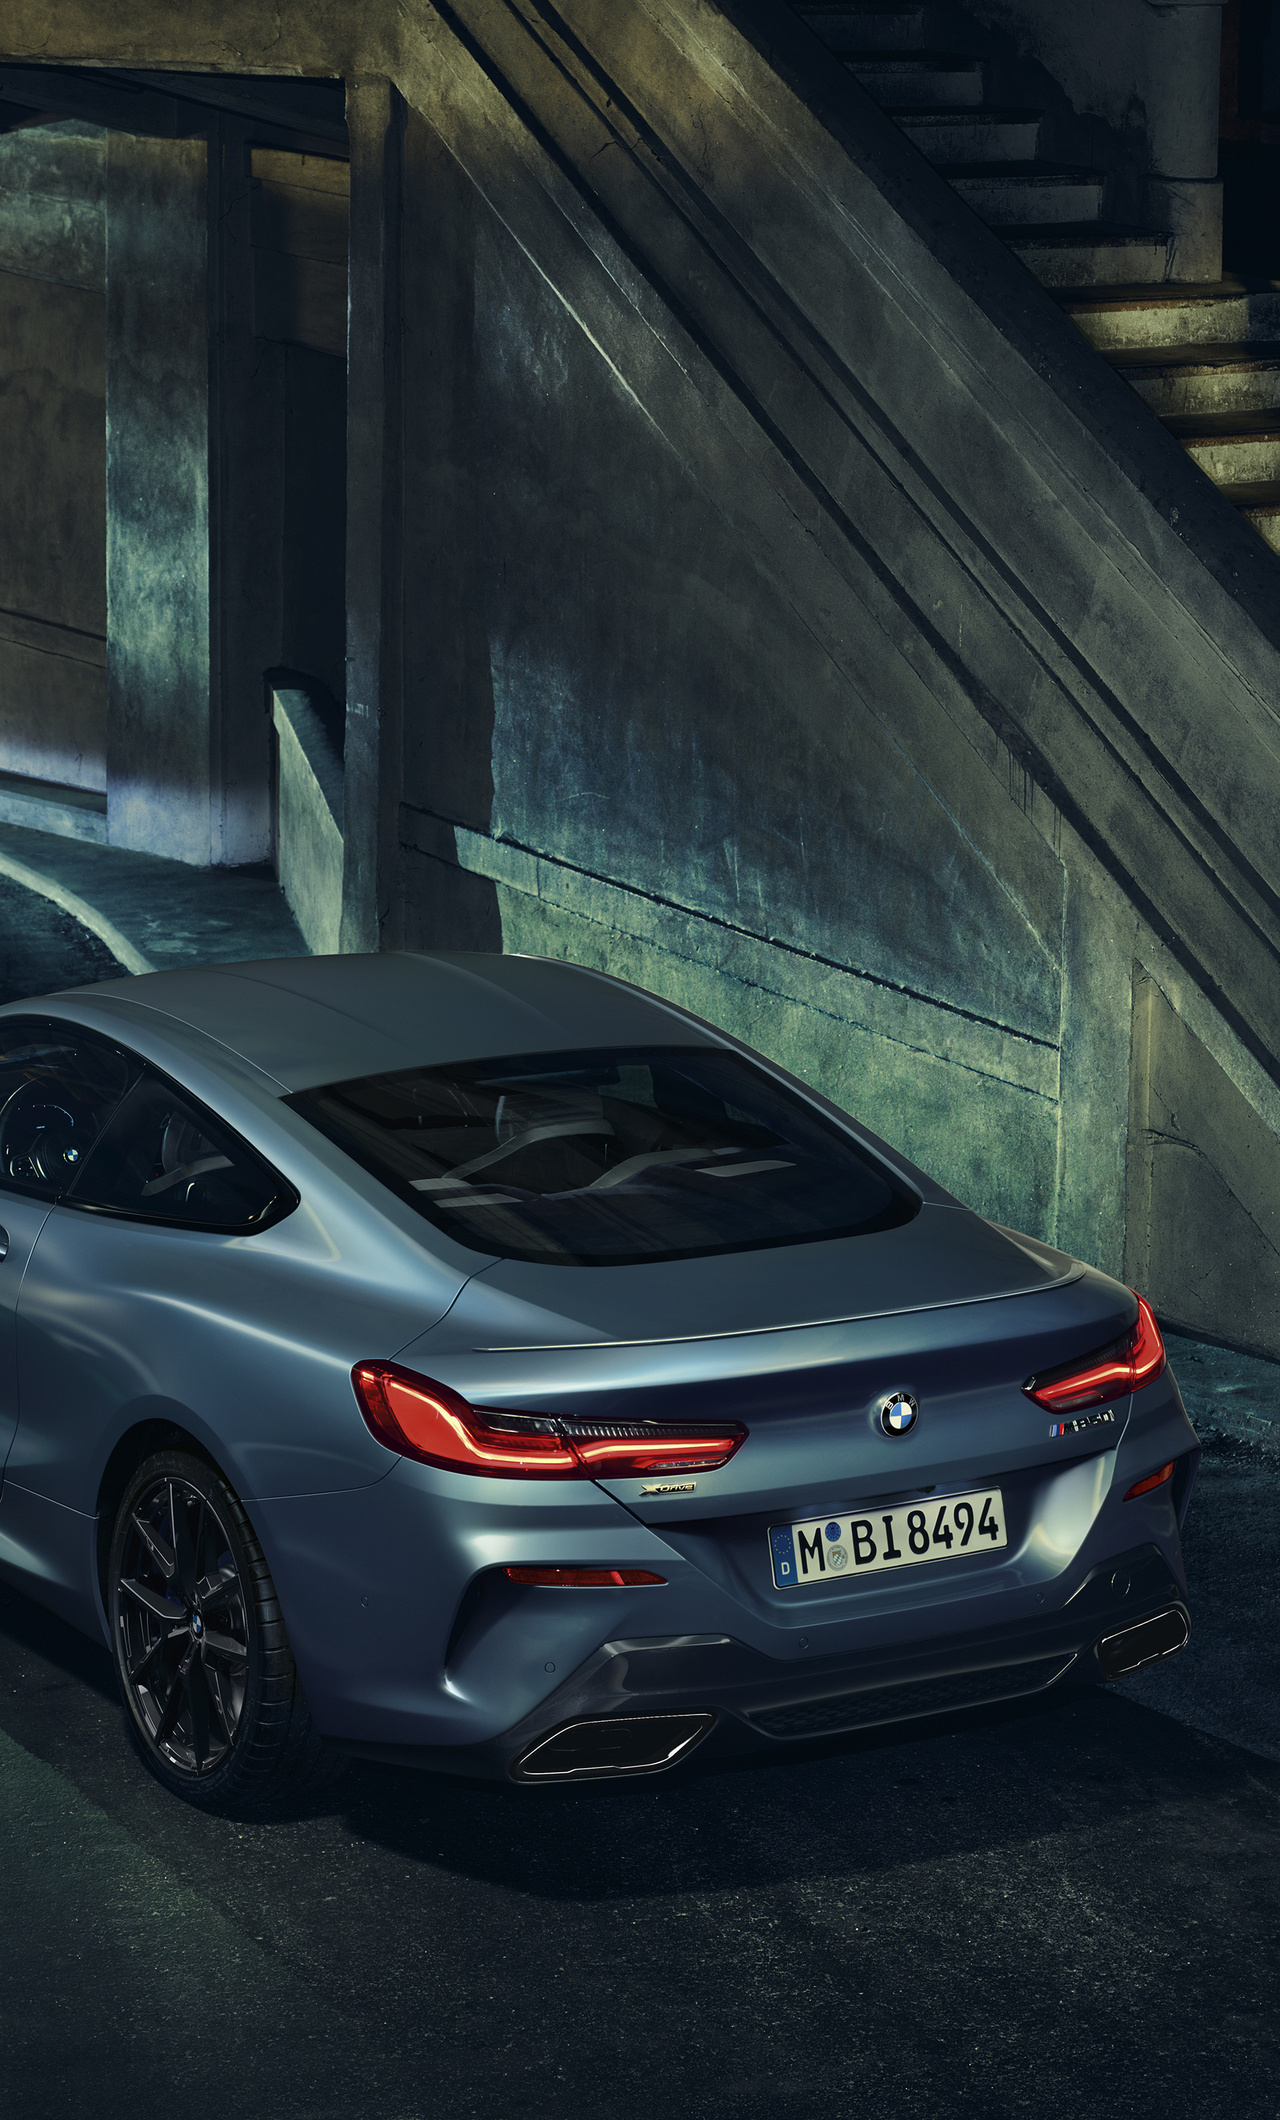 1280x2120 BMW M850i Rear iPhone 6+ HD 4k Wallpapers ...